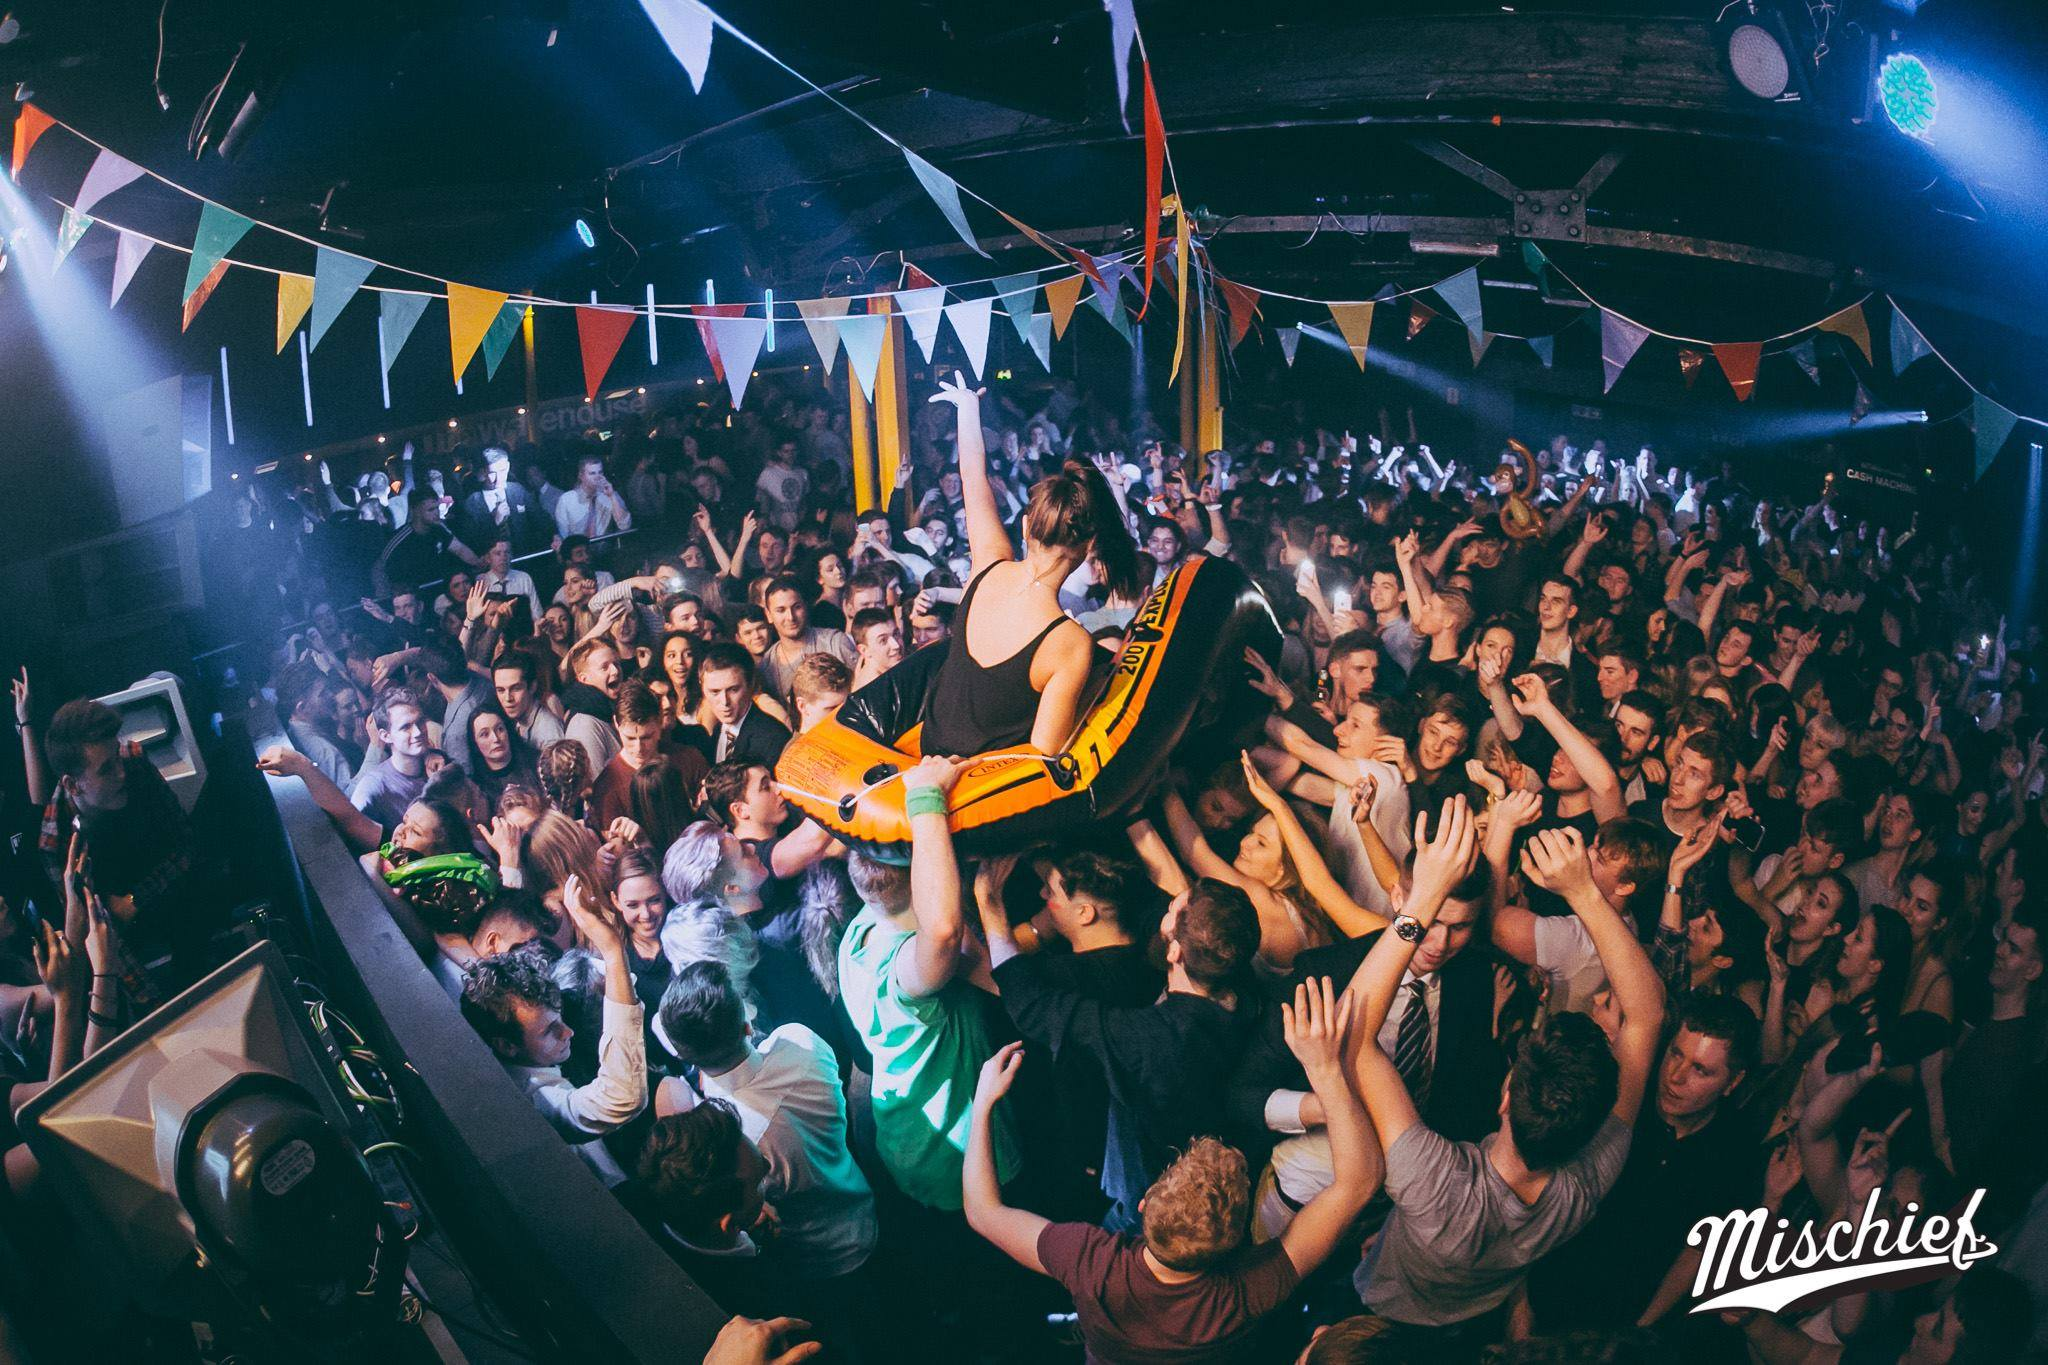 Party Universities, with an image of a woman crowd surfing in a dinghy at The Warehouse, Leeds